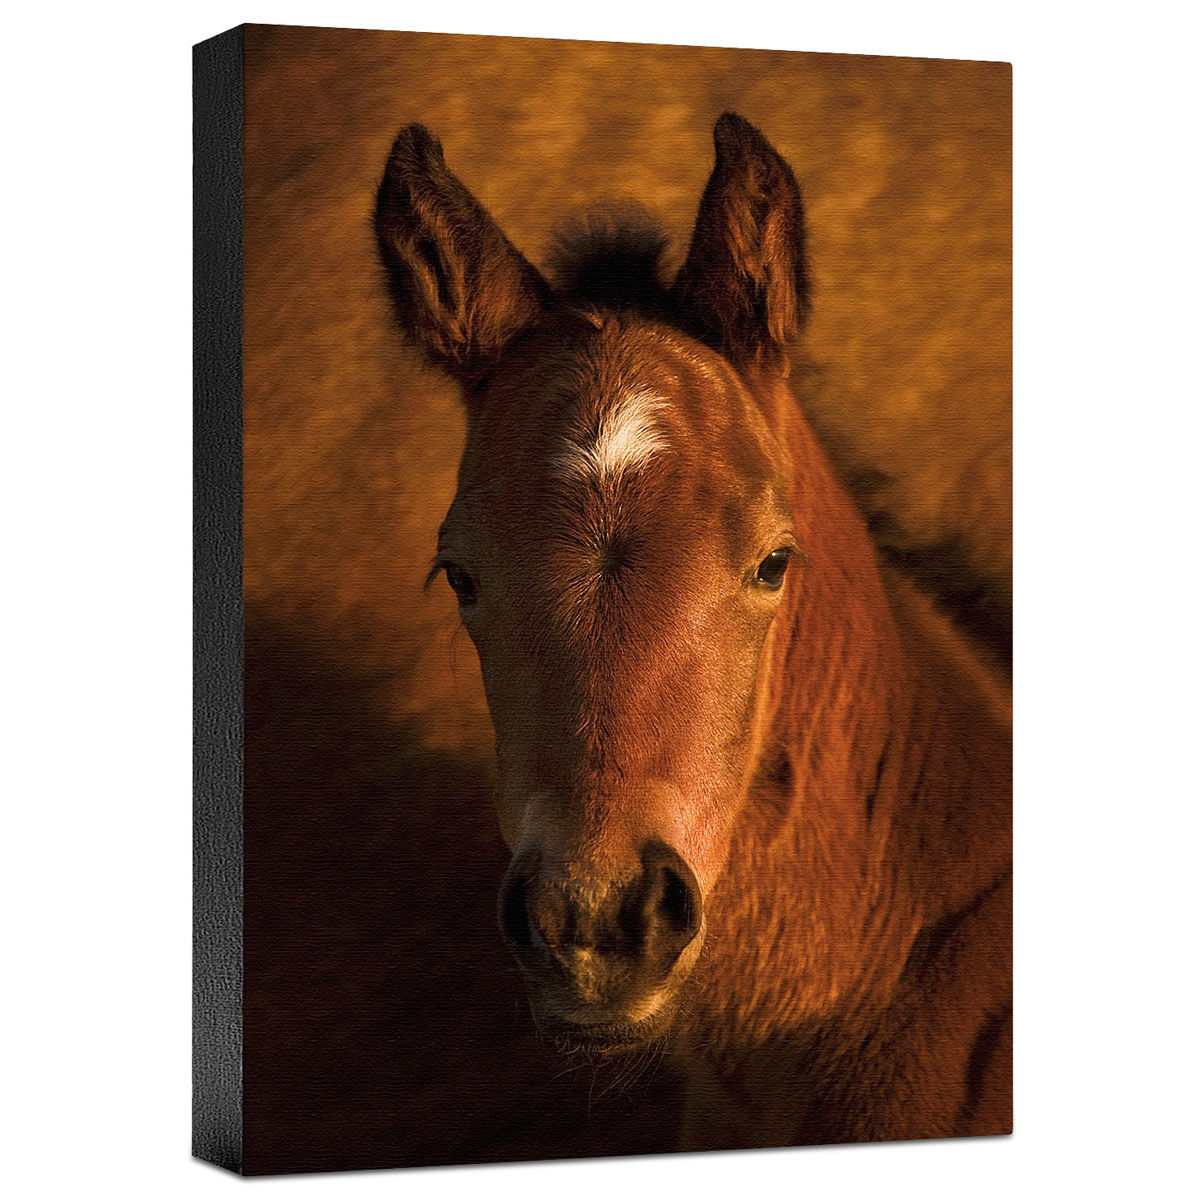 What's Up Gallery Wrapped Canvas